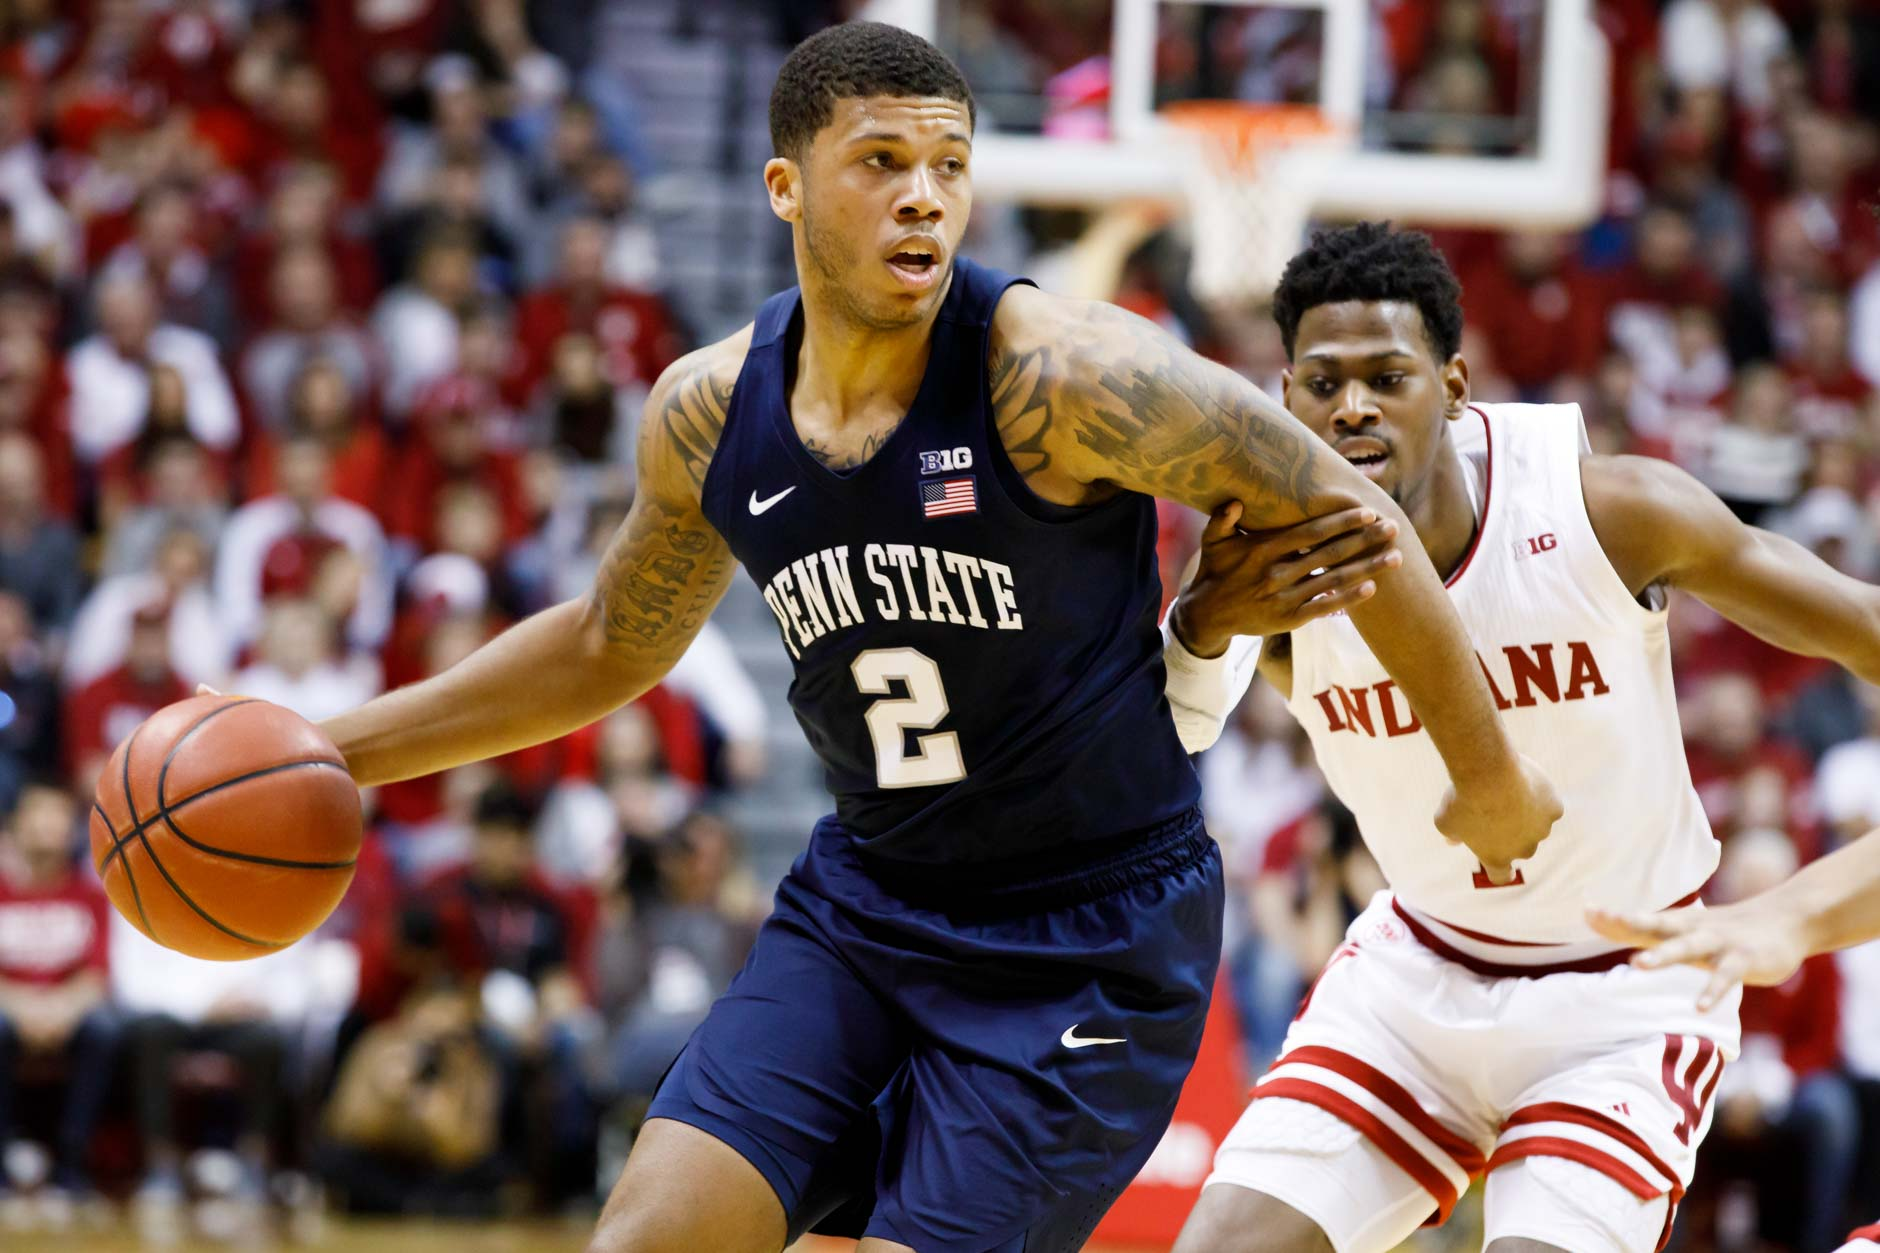 Penn State's Myles Dread (2) works past Indiana's Aljami Durham (1) during a NCAA men's basketball game at Simon Skjodt Assembly Hall in Bloomington, Indiana on Sunday, Feb. 23, 2020. (Photo by James Brosher)